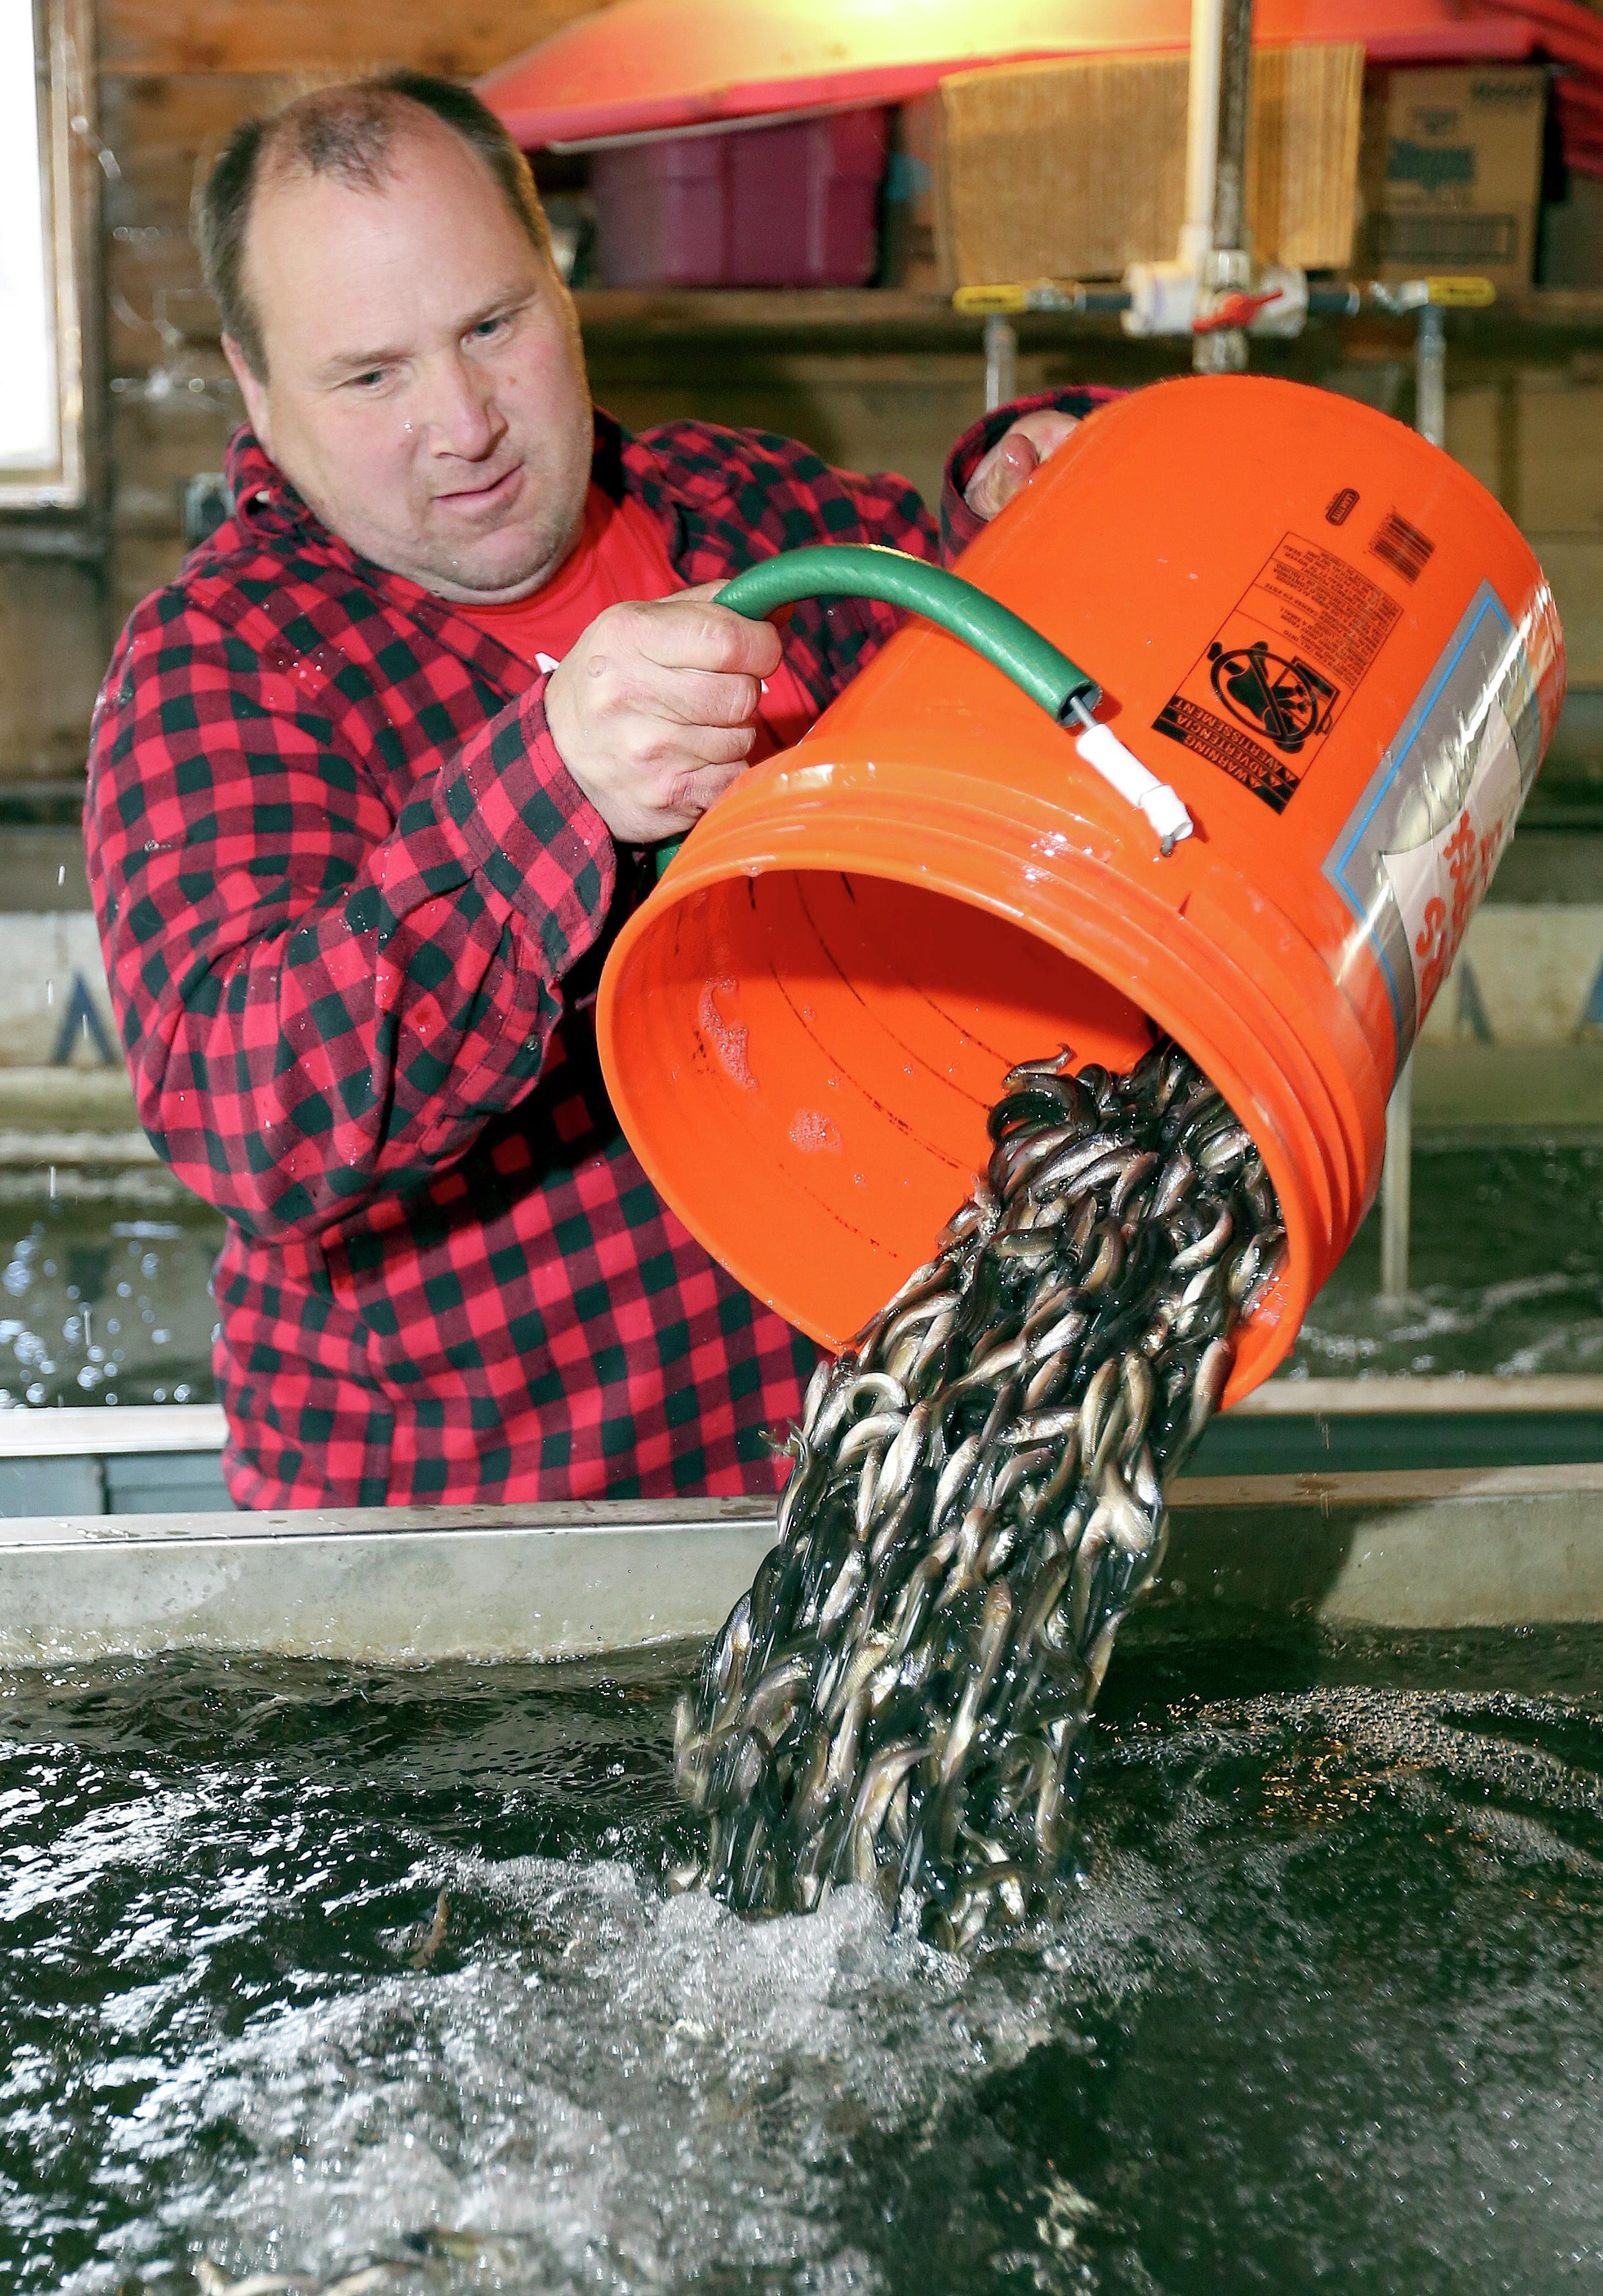 Despite many bait dealers saying minnows could be in short supply ahead of Saturday's Minnesota fishing opener, John Chalstrom of Chalstrom's bait near Duluth said he's confident he'll have enough minnows for anglers by Friday. Forum News Service file photo